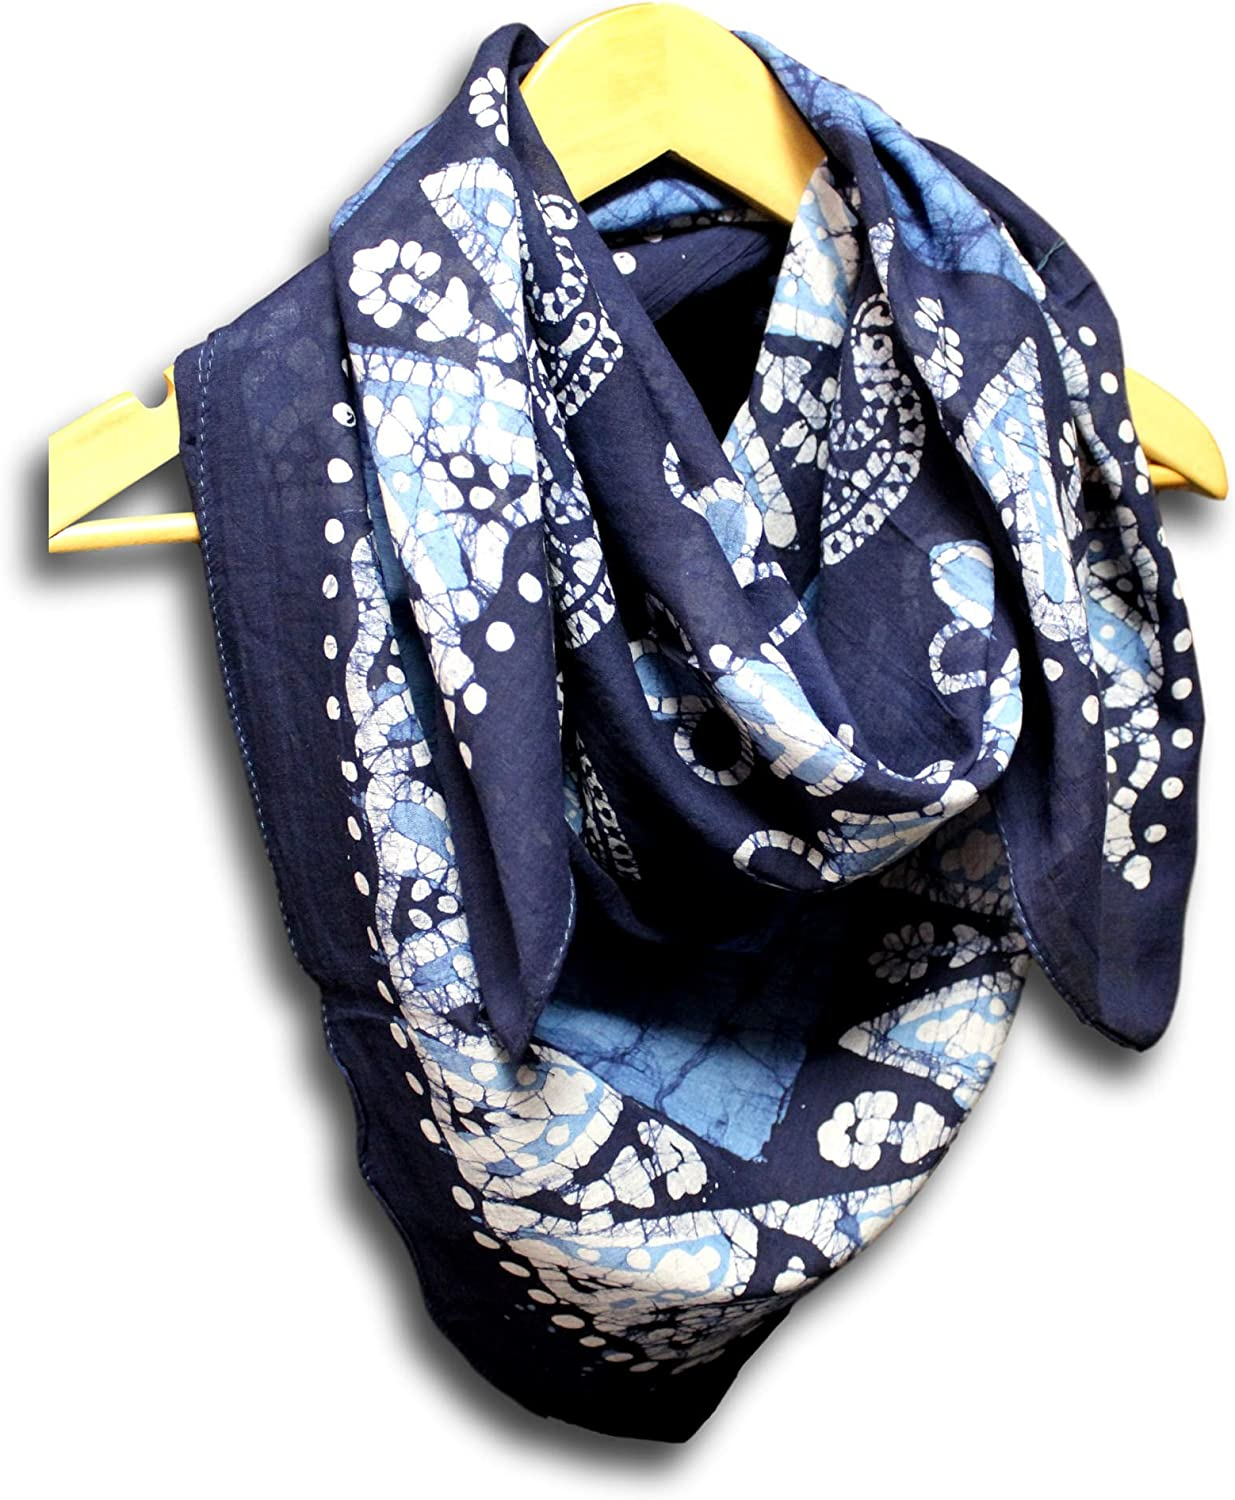 Homestead Women's Fashion Lightweight Floral Paisley Scarf Batik Print Sheer Soft 100% Cotton Neck Head Scarf Stole (Blue, 42 x 42 inches)